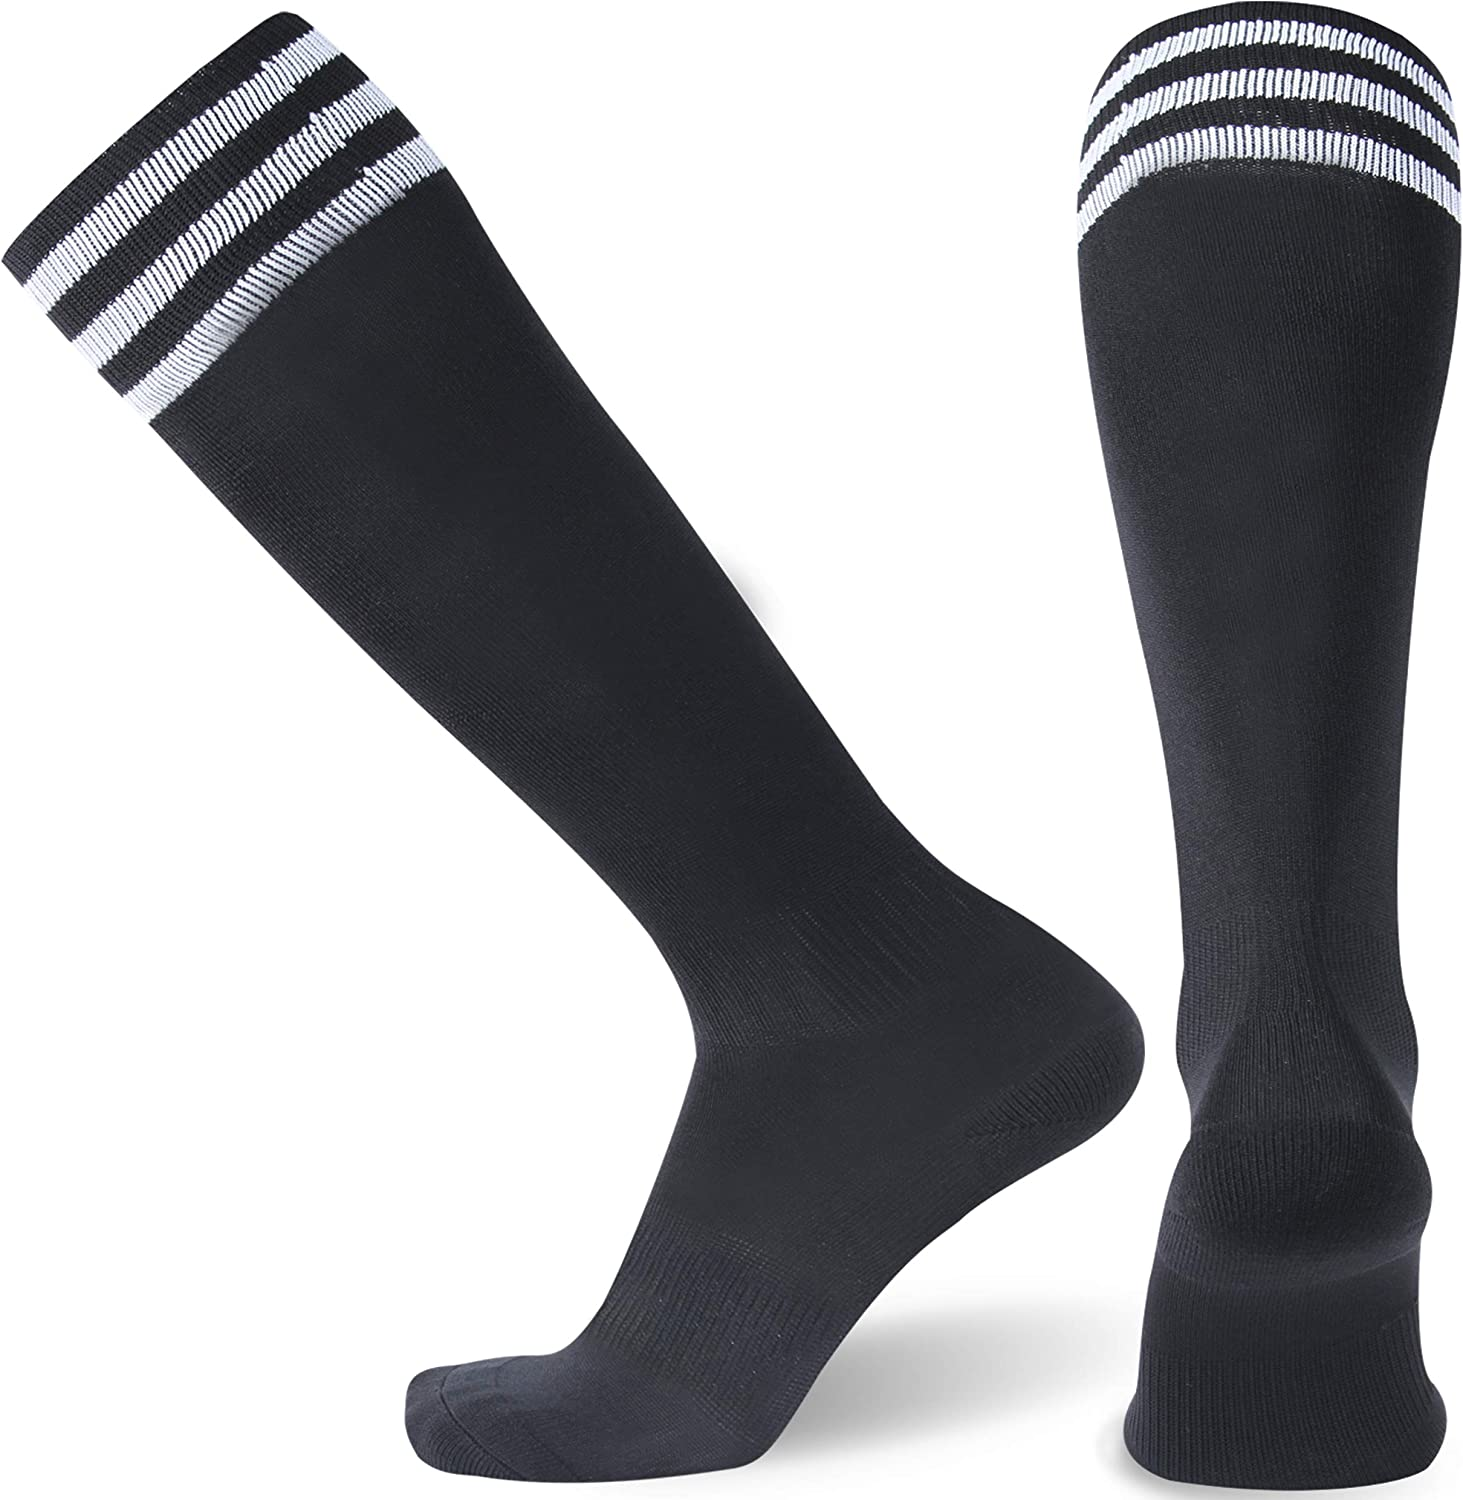 RTZAT Basketball Crew Socks with Basketball Logo Athletic Cushion Gym Crew Socks Women Basketball Socks